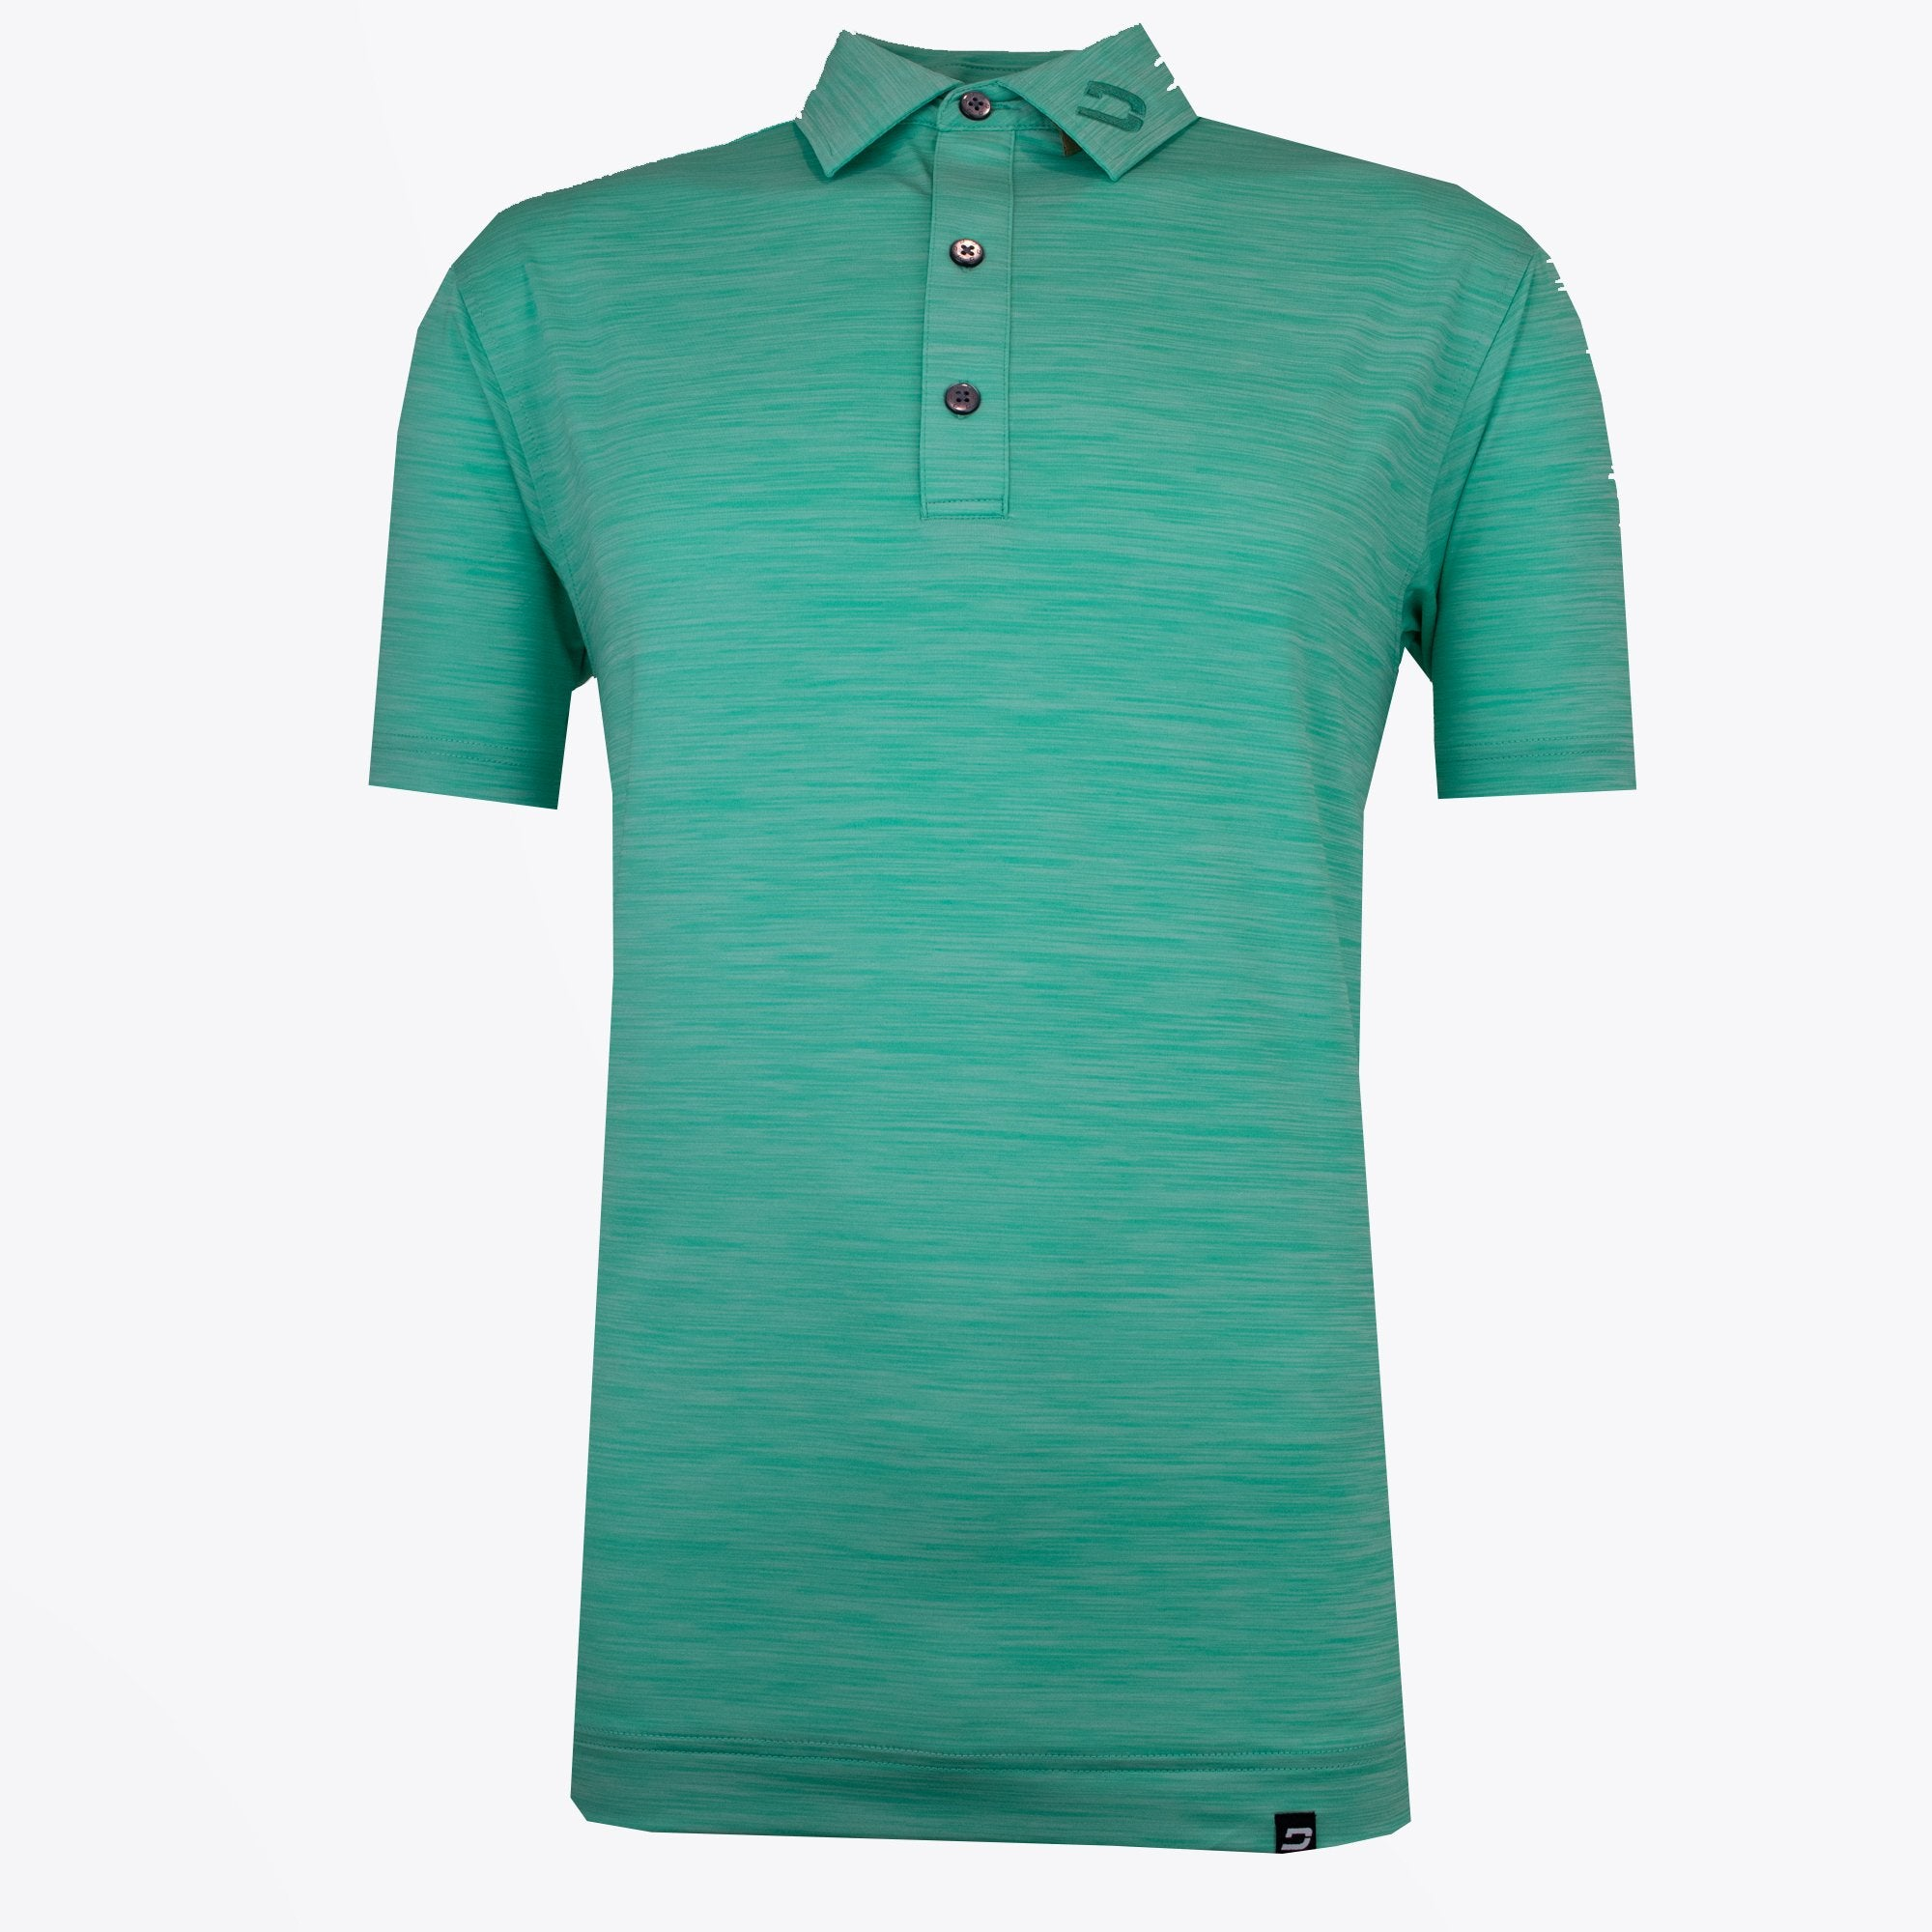 Druids Golf - Mens Flek Polo (Green)